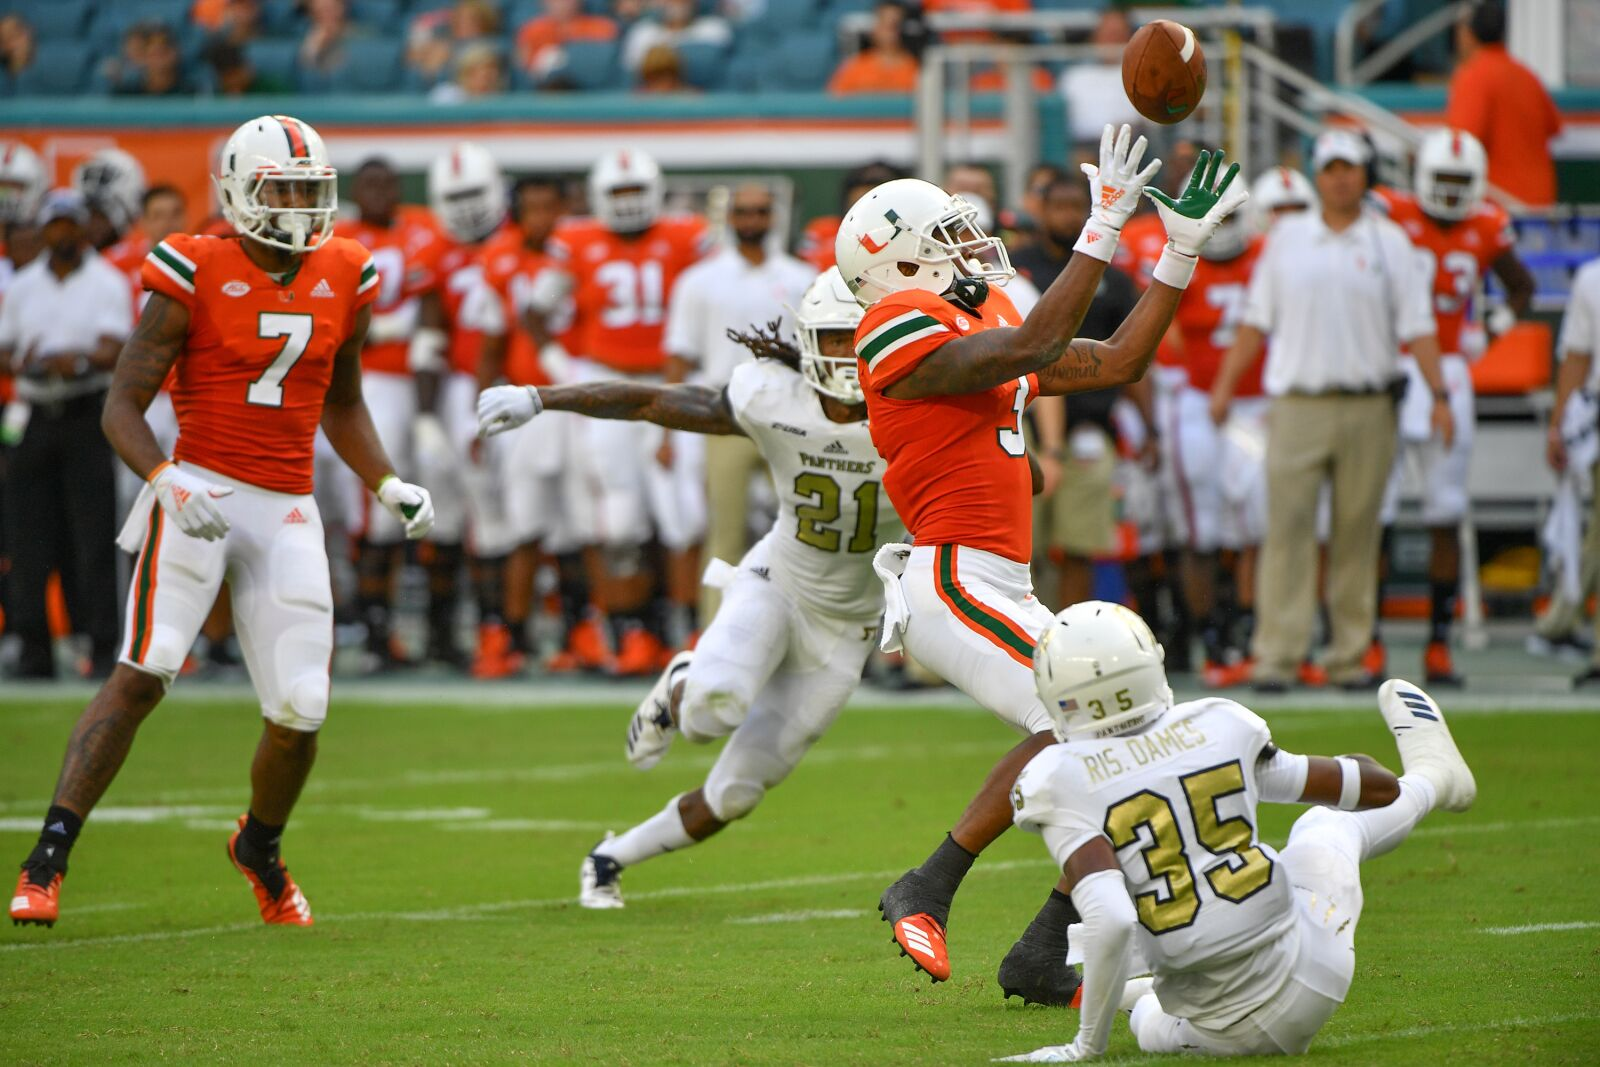 Miami Hurricanes Roster Upgrades Made Big Impact In Win Over Fiu